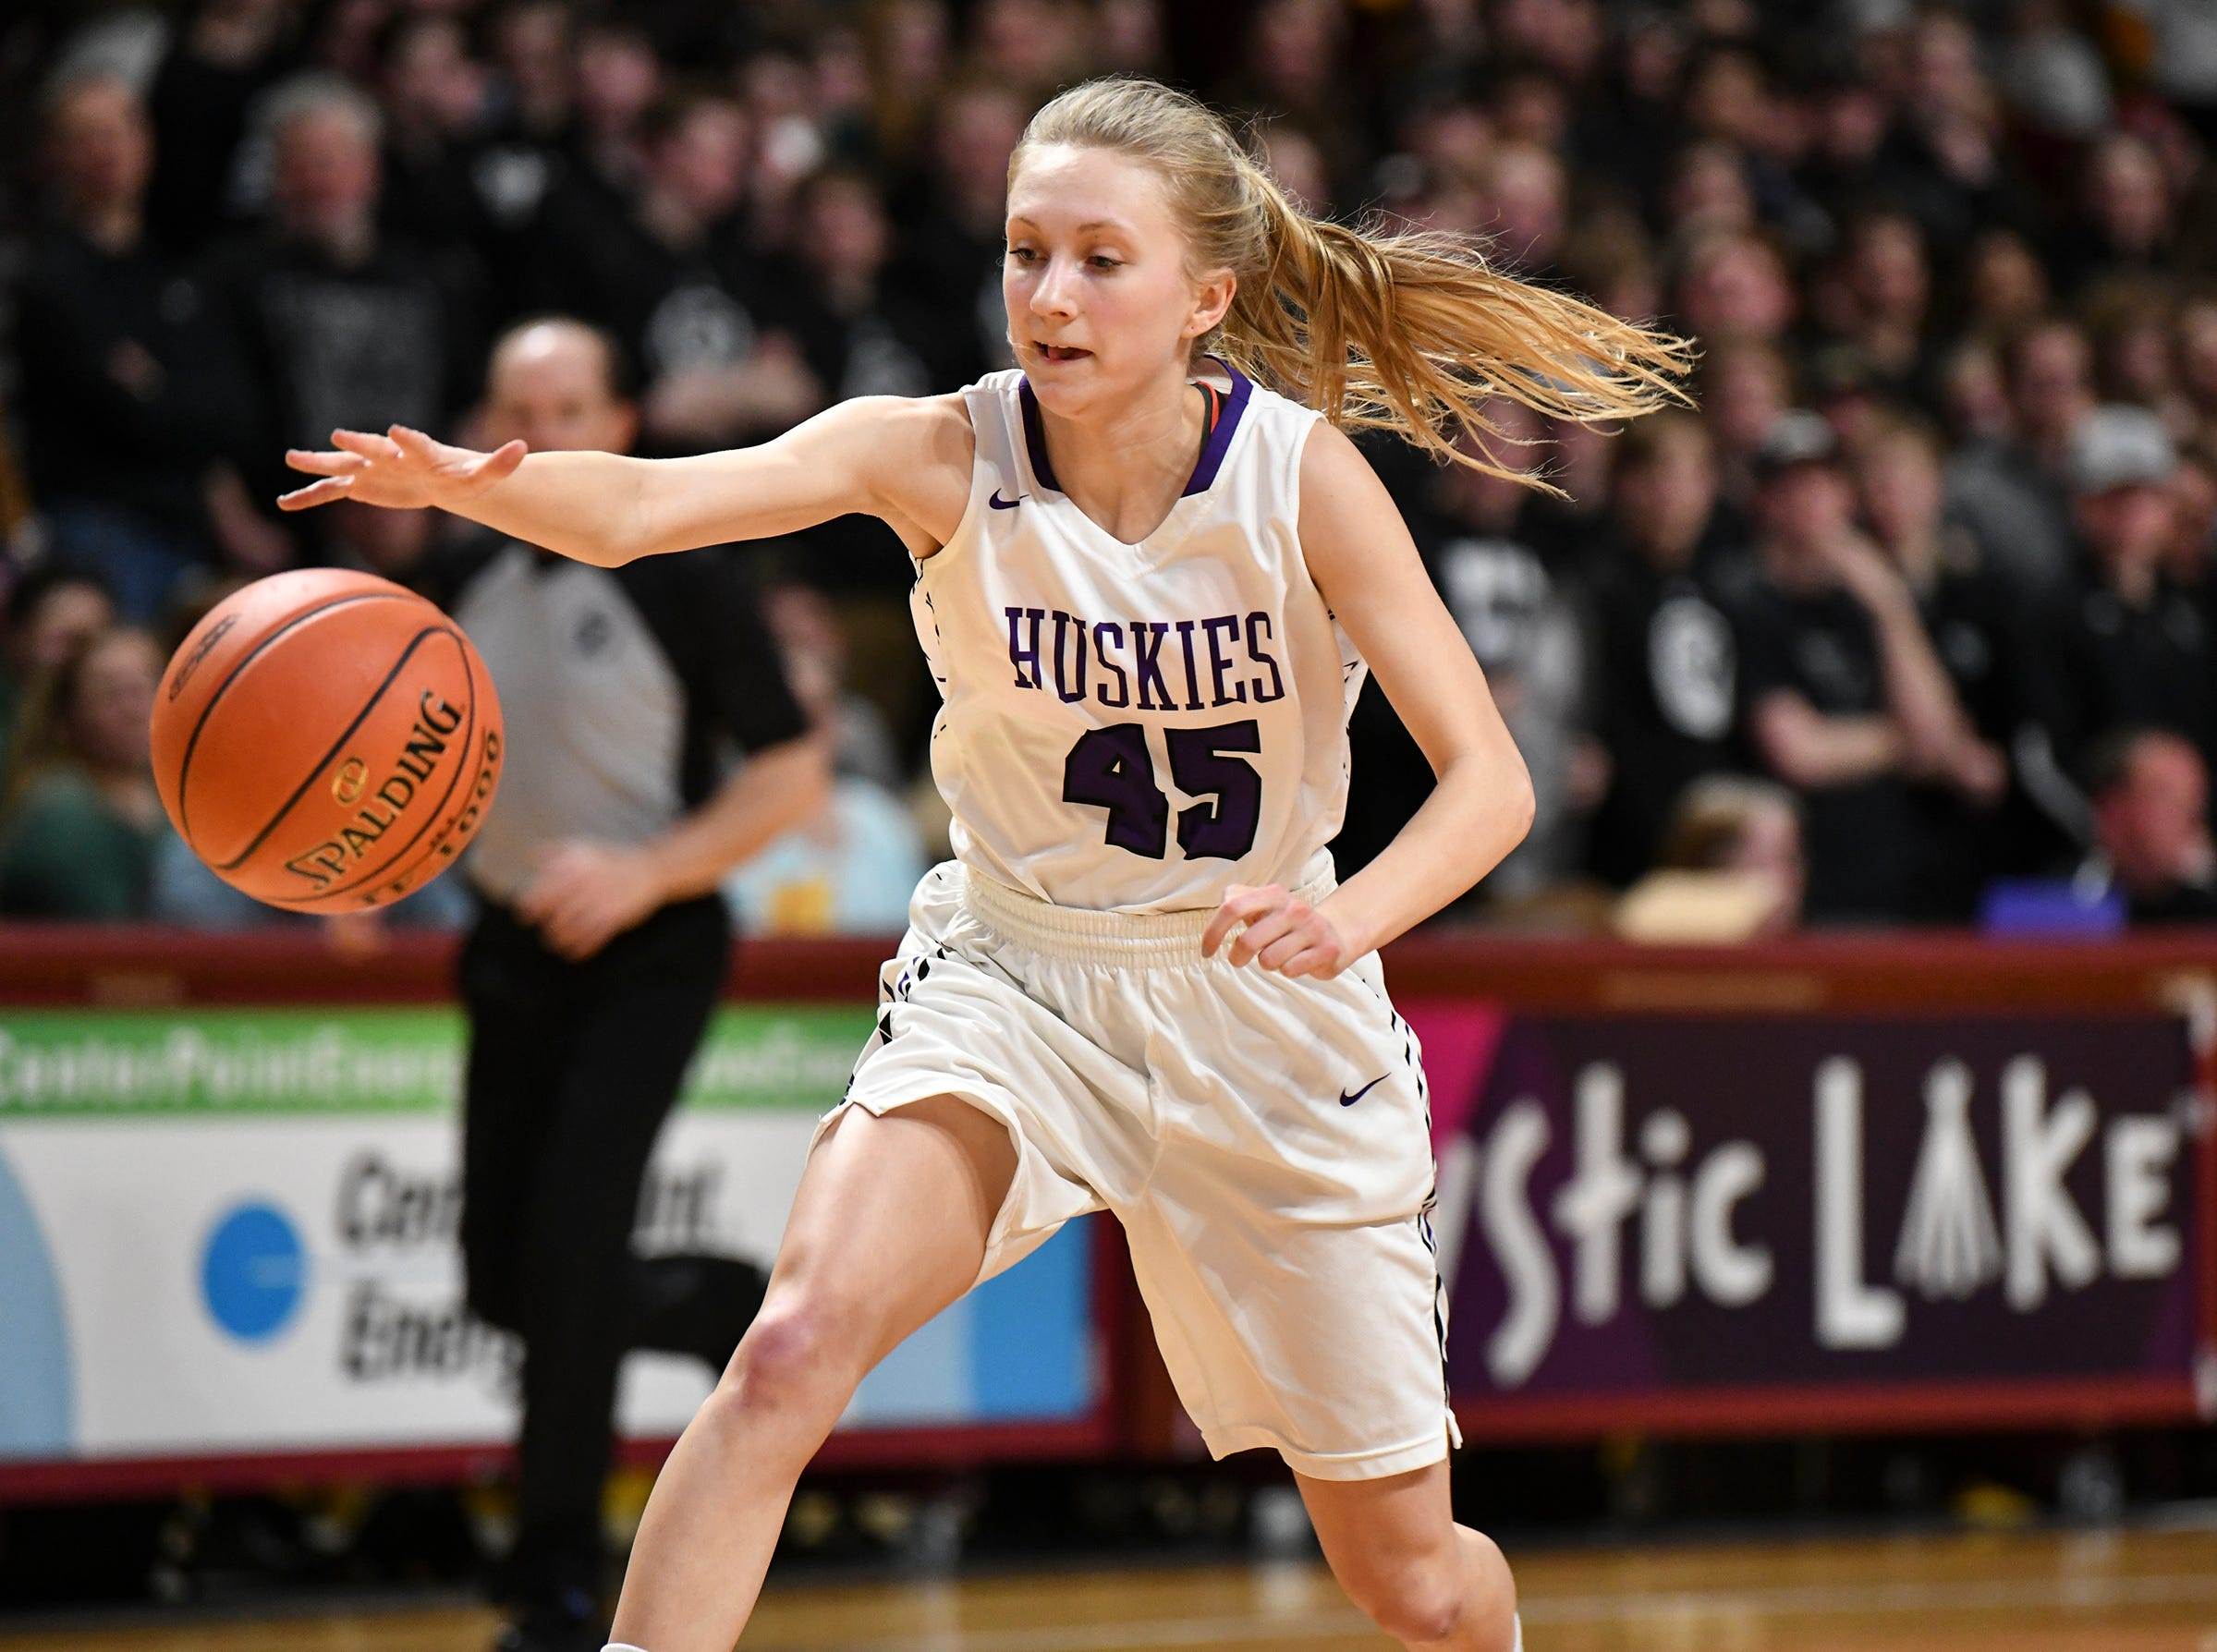 Albany's Rachael Neu gets control of the ball during the state Class 2A quarterfinals game Wednesday, March 13, at the University of Minnesota in Minneapolis.